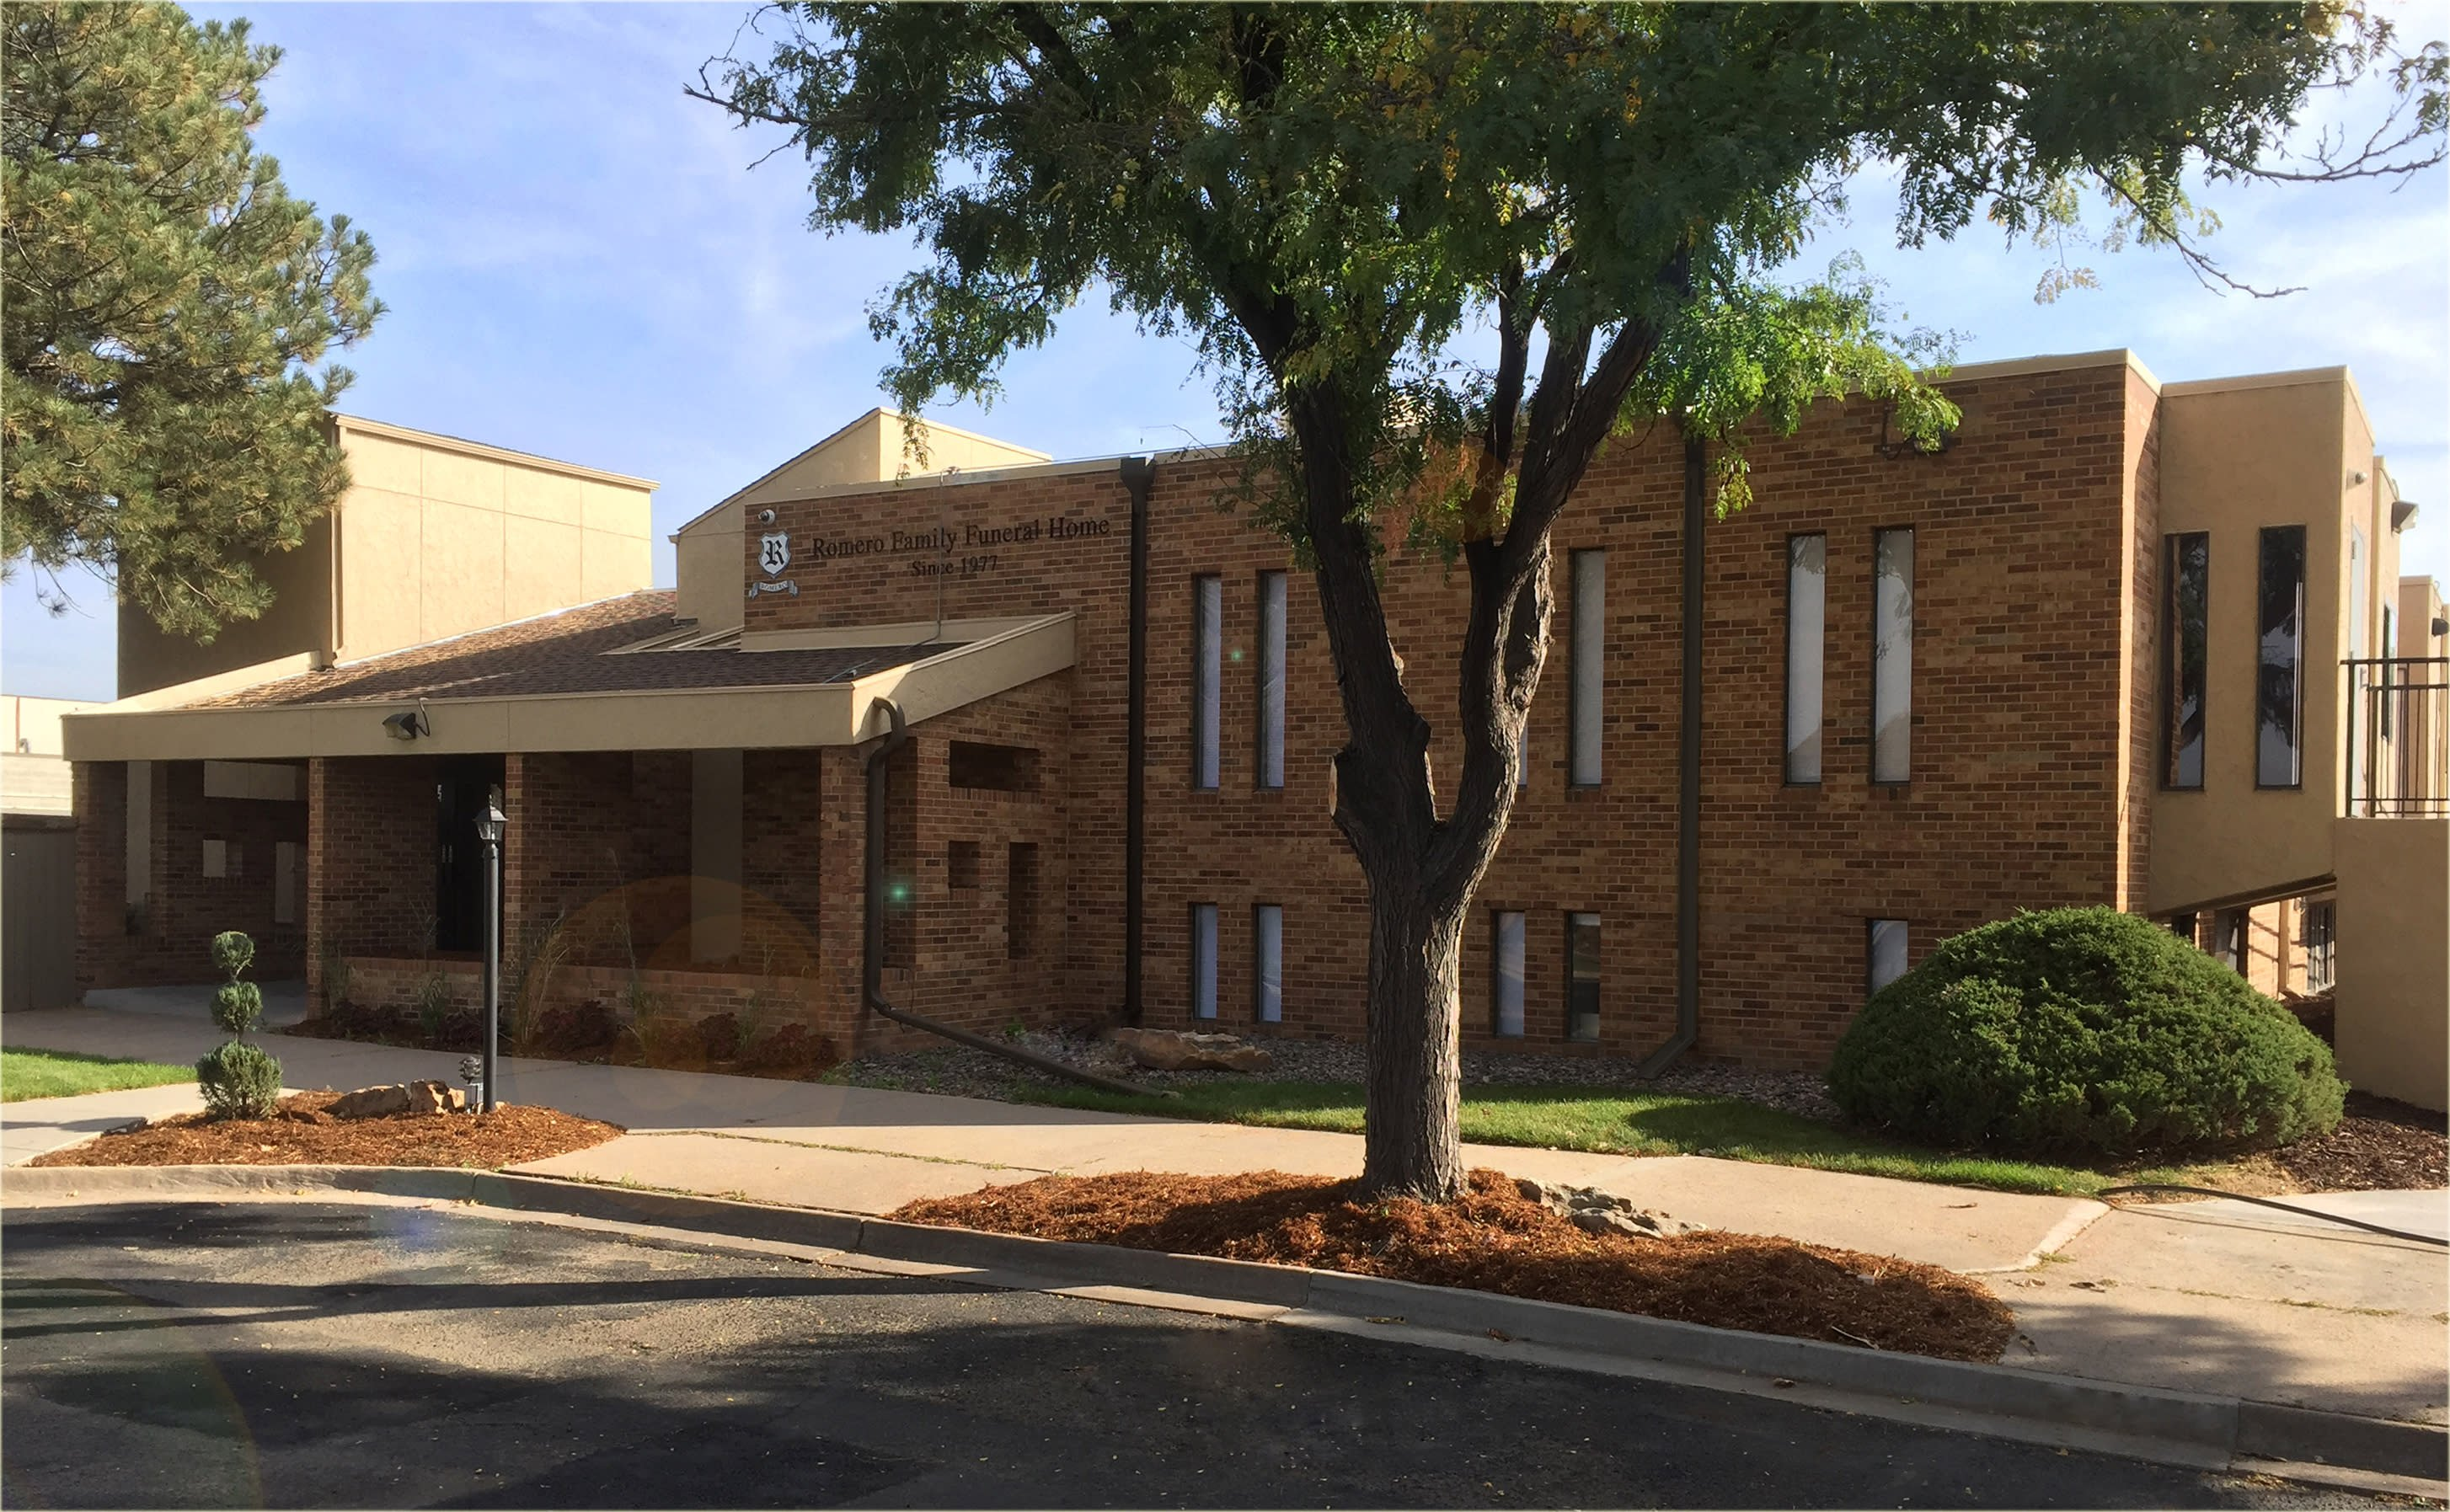 Romero Family Funeral Home And Cremations Aurora Co